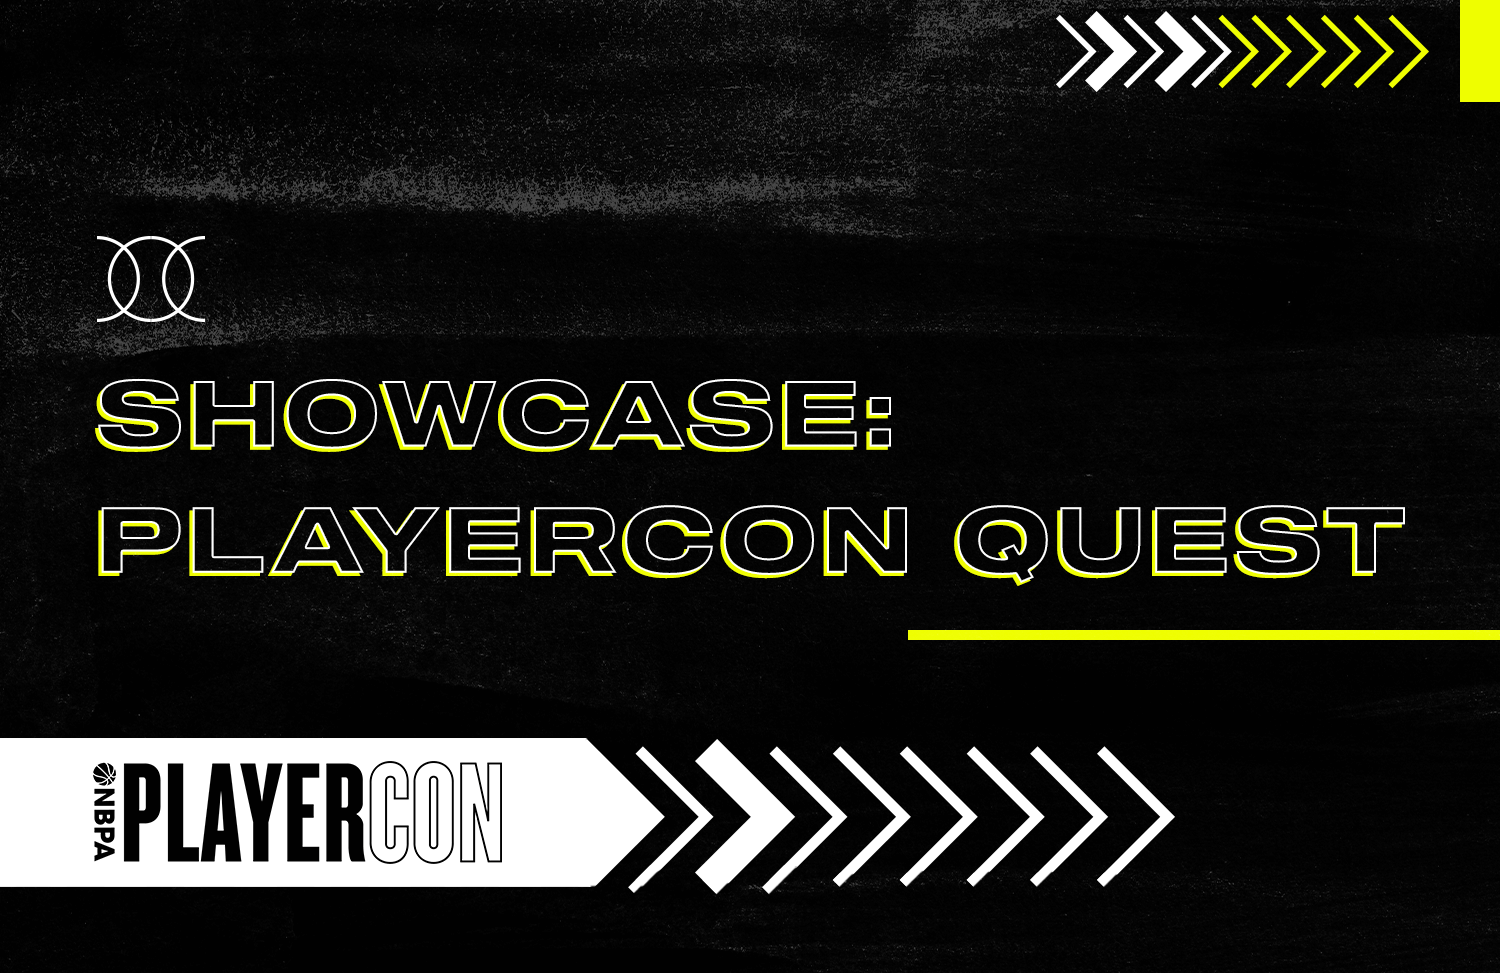 Complete PlayerCon Quest for your chance to win exclusive access!